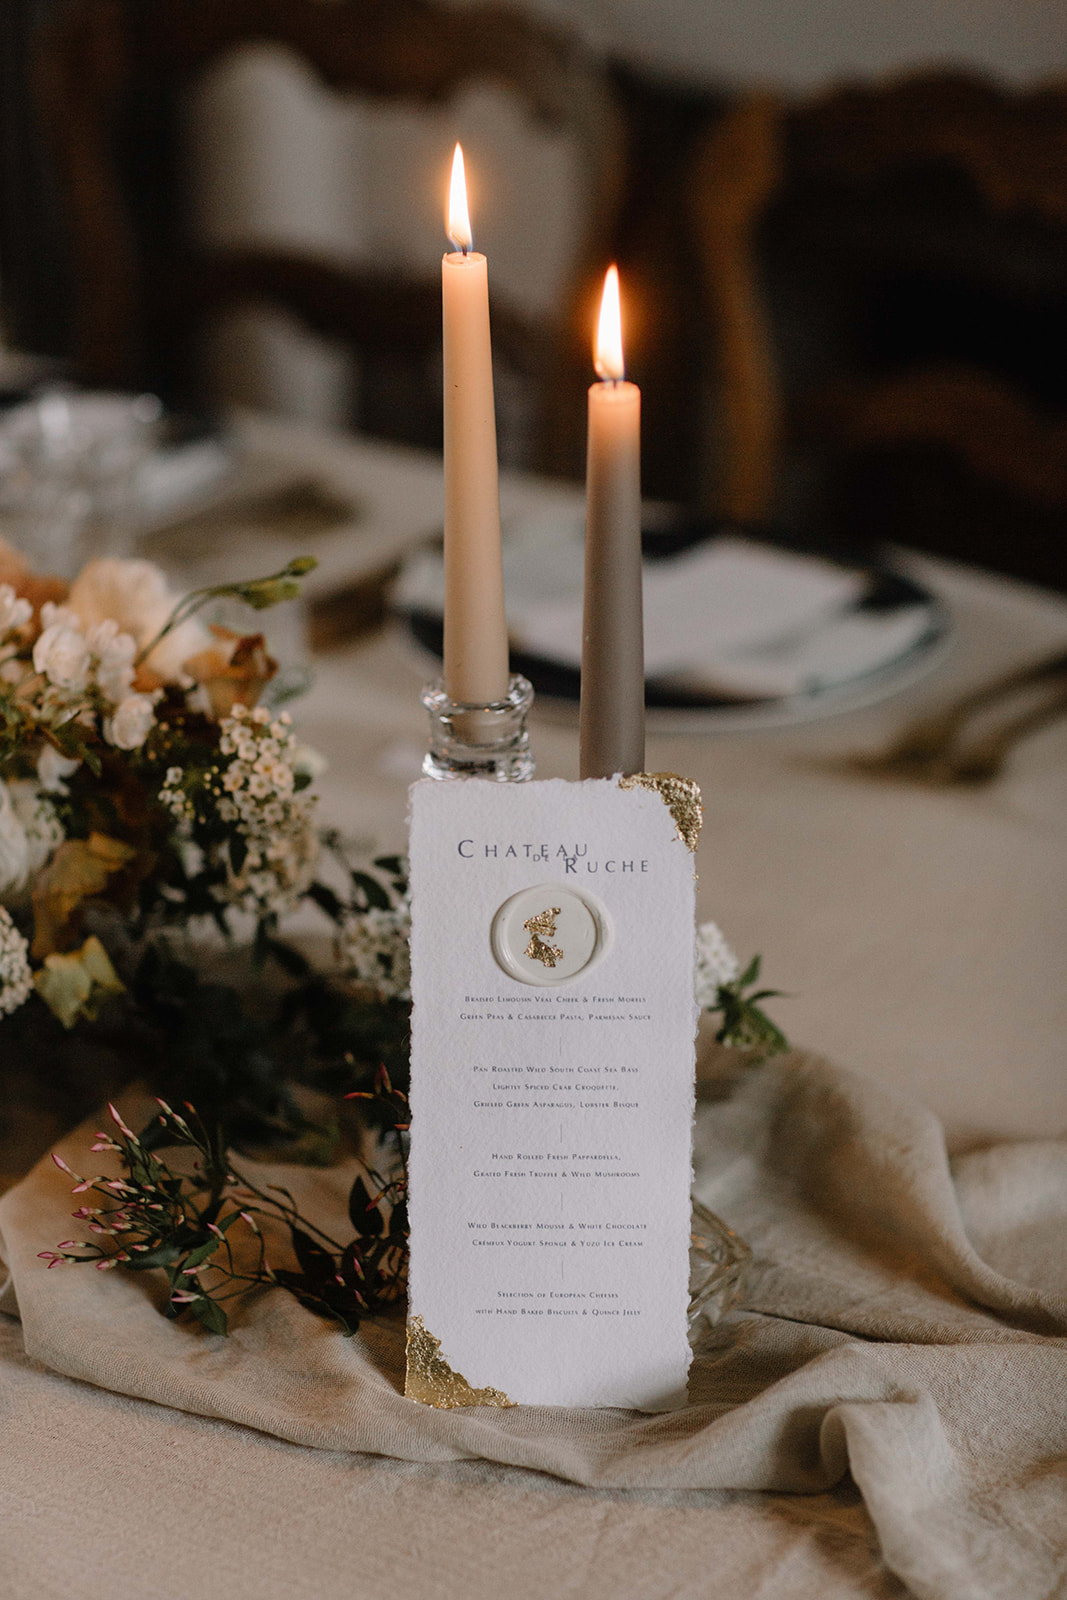 Table styling and decor for a luxury winter wedding | Planned and styled by Mirabella Weddings - a luxury UK and destination wedding planner